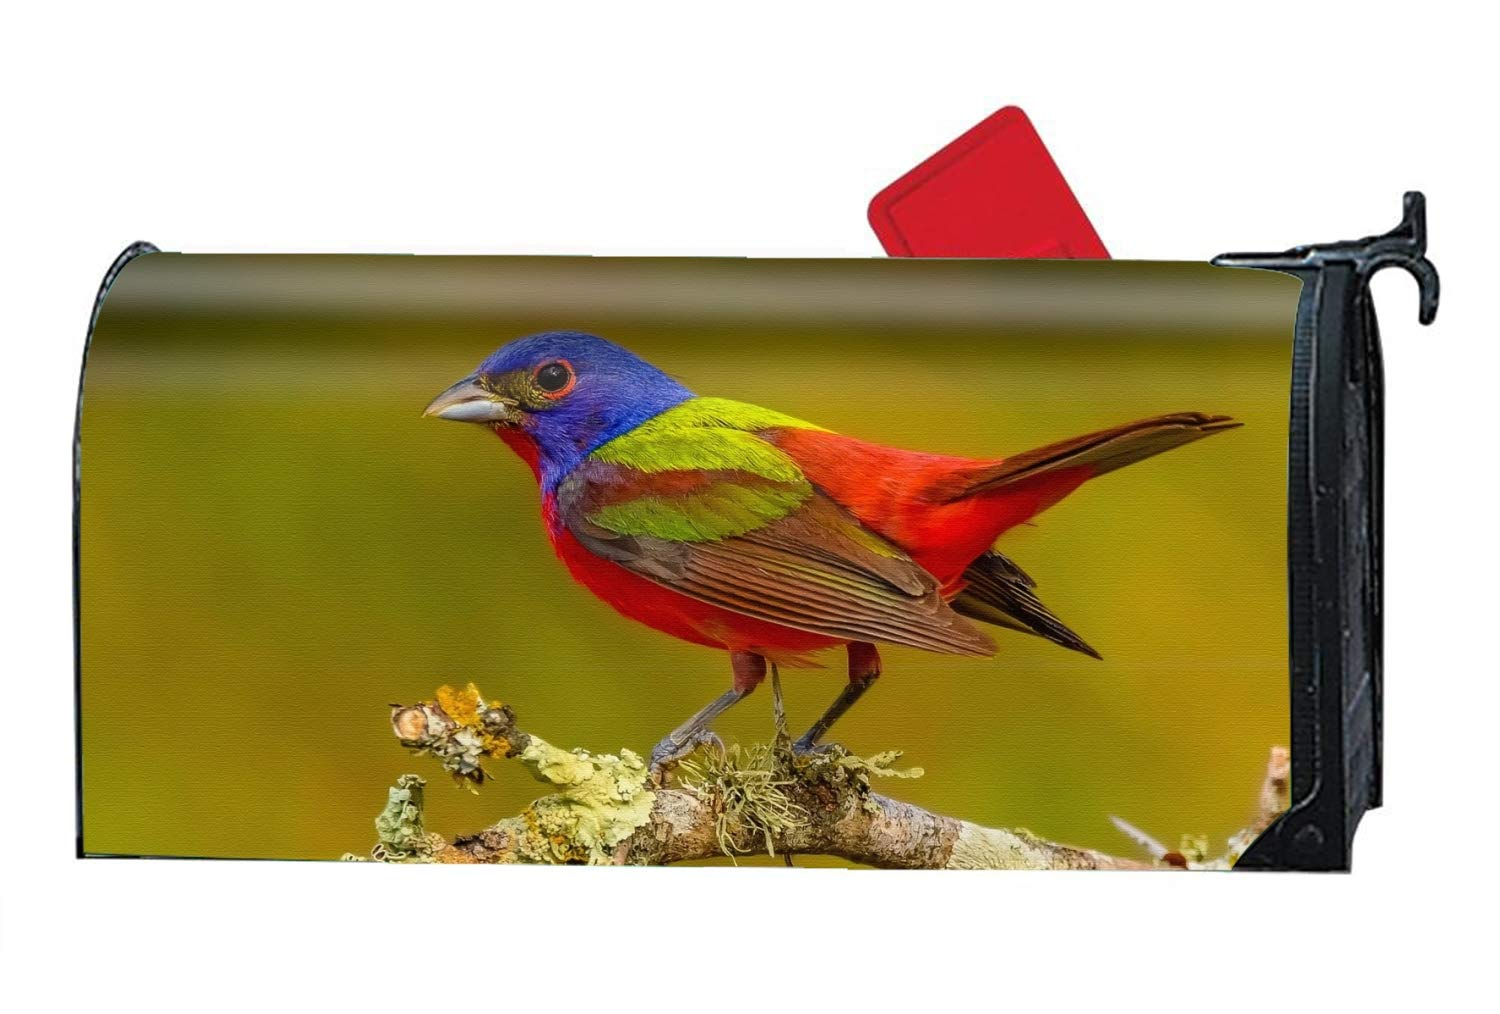 FANMIL Magnetic Mailbox Cover - Animal Bunting Birds Colors Painted Bird Artistic Passerine Themed, Decorative Mailbox Wrap for Standard Size, Customized Design ¨C Multicolor, 9x21 inches